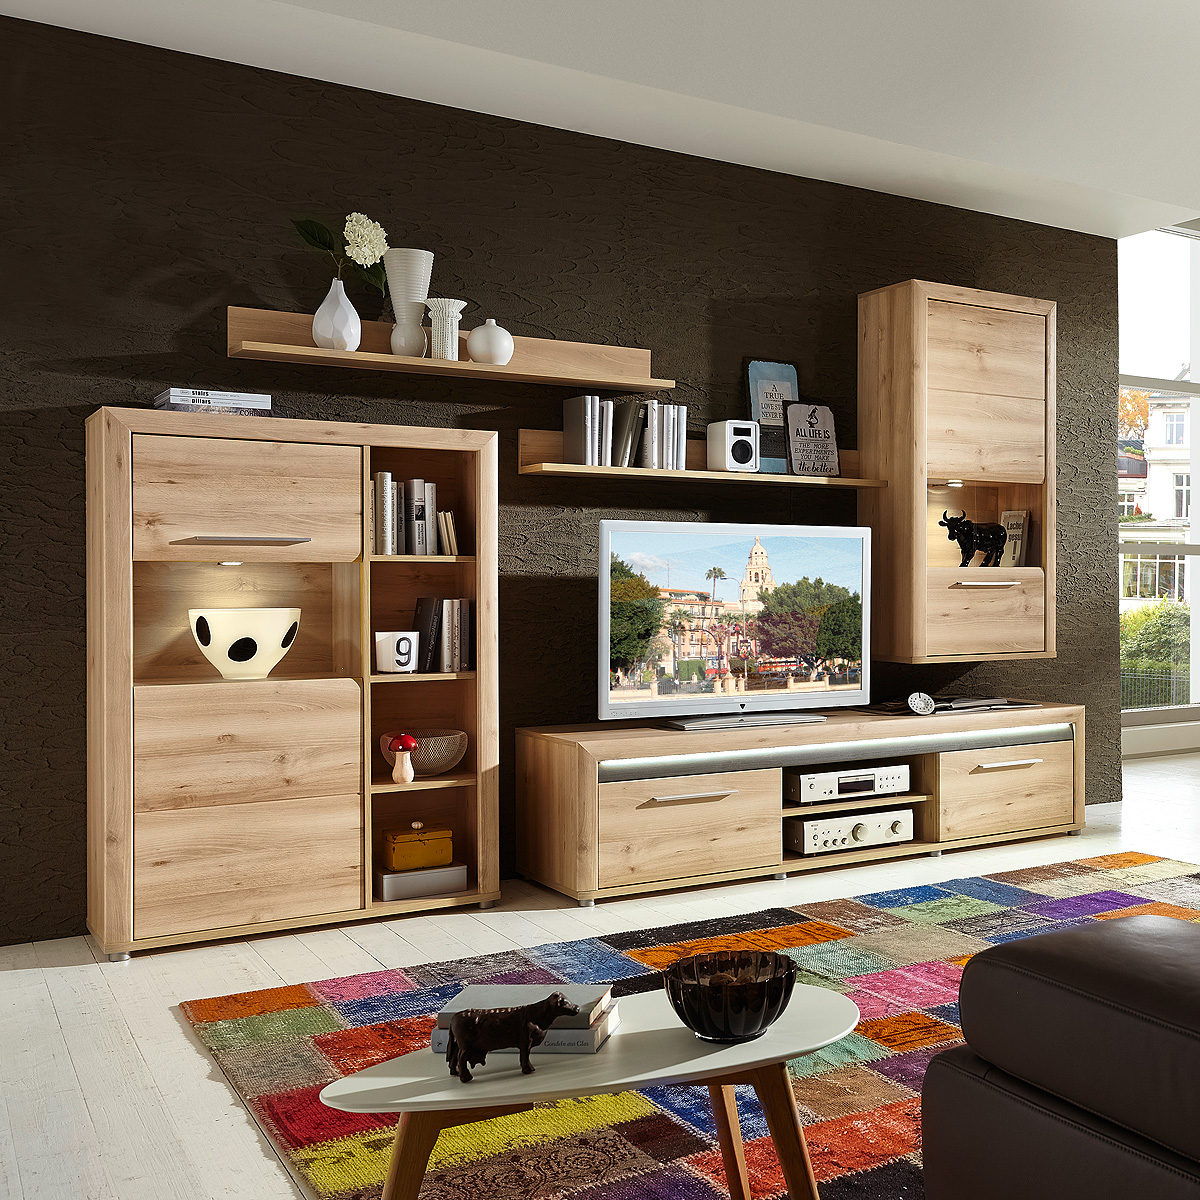 wohnwand 1 run anbauwand wohnkombi wohnzimmer in buche hell inkl led ebay. Black Bedroom Furniture Sets. Home Design Ideas